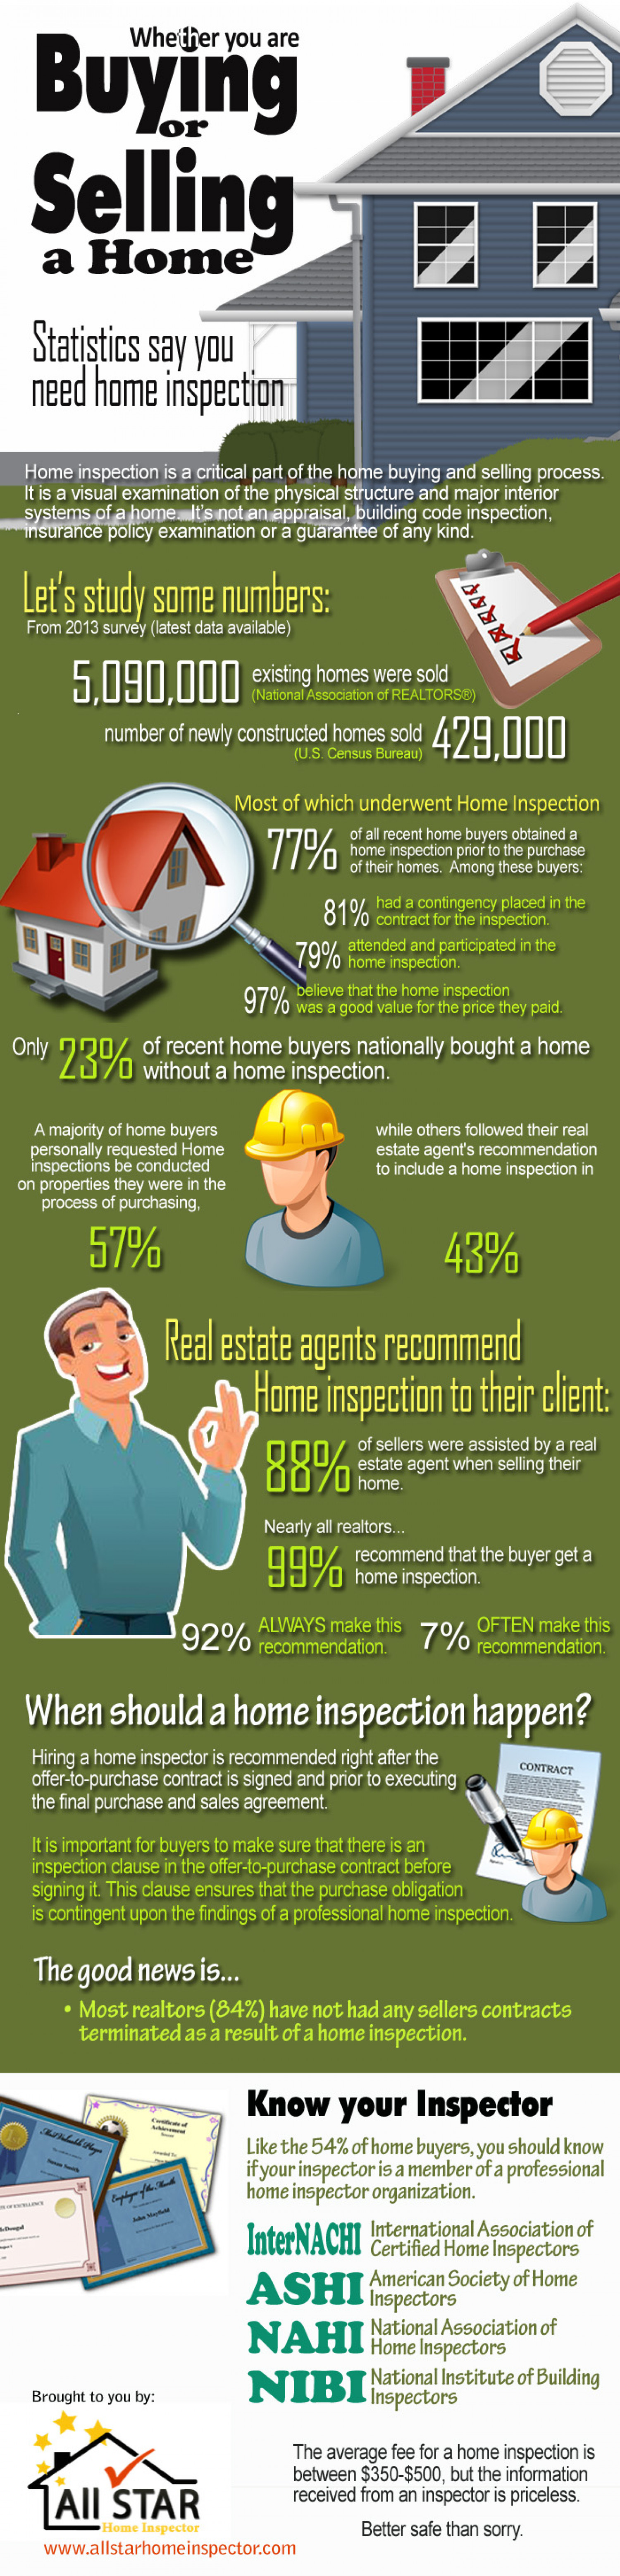 BUYING OR SELLING A HOME - Statistics say you need home inspection. Infographic